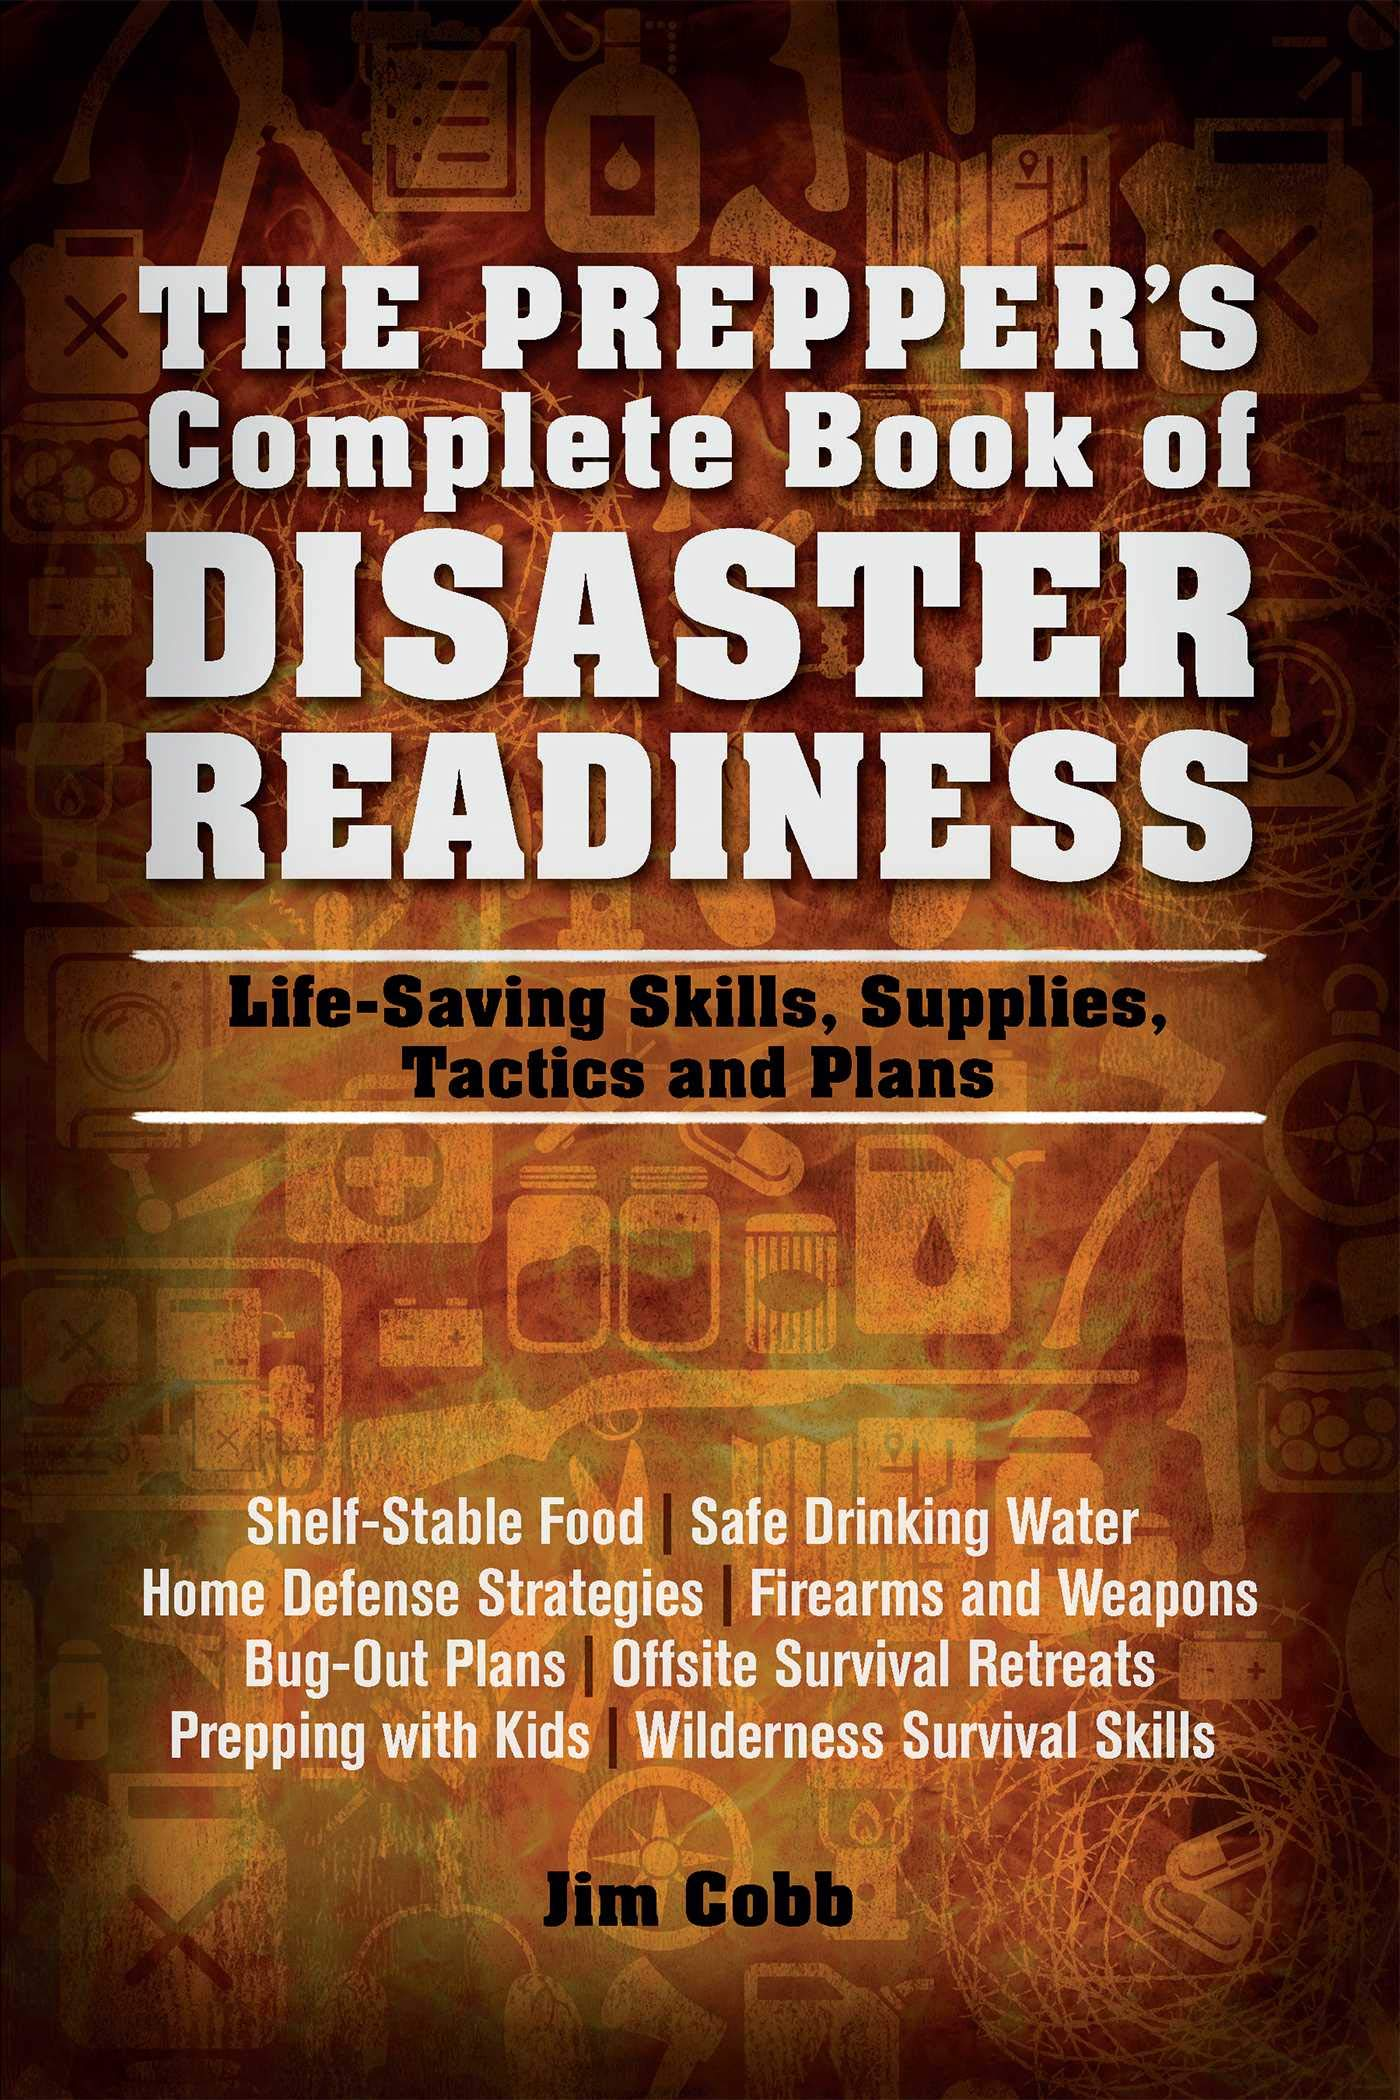 The Prepper's Complete Book of Disaster Readiness PDF